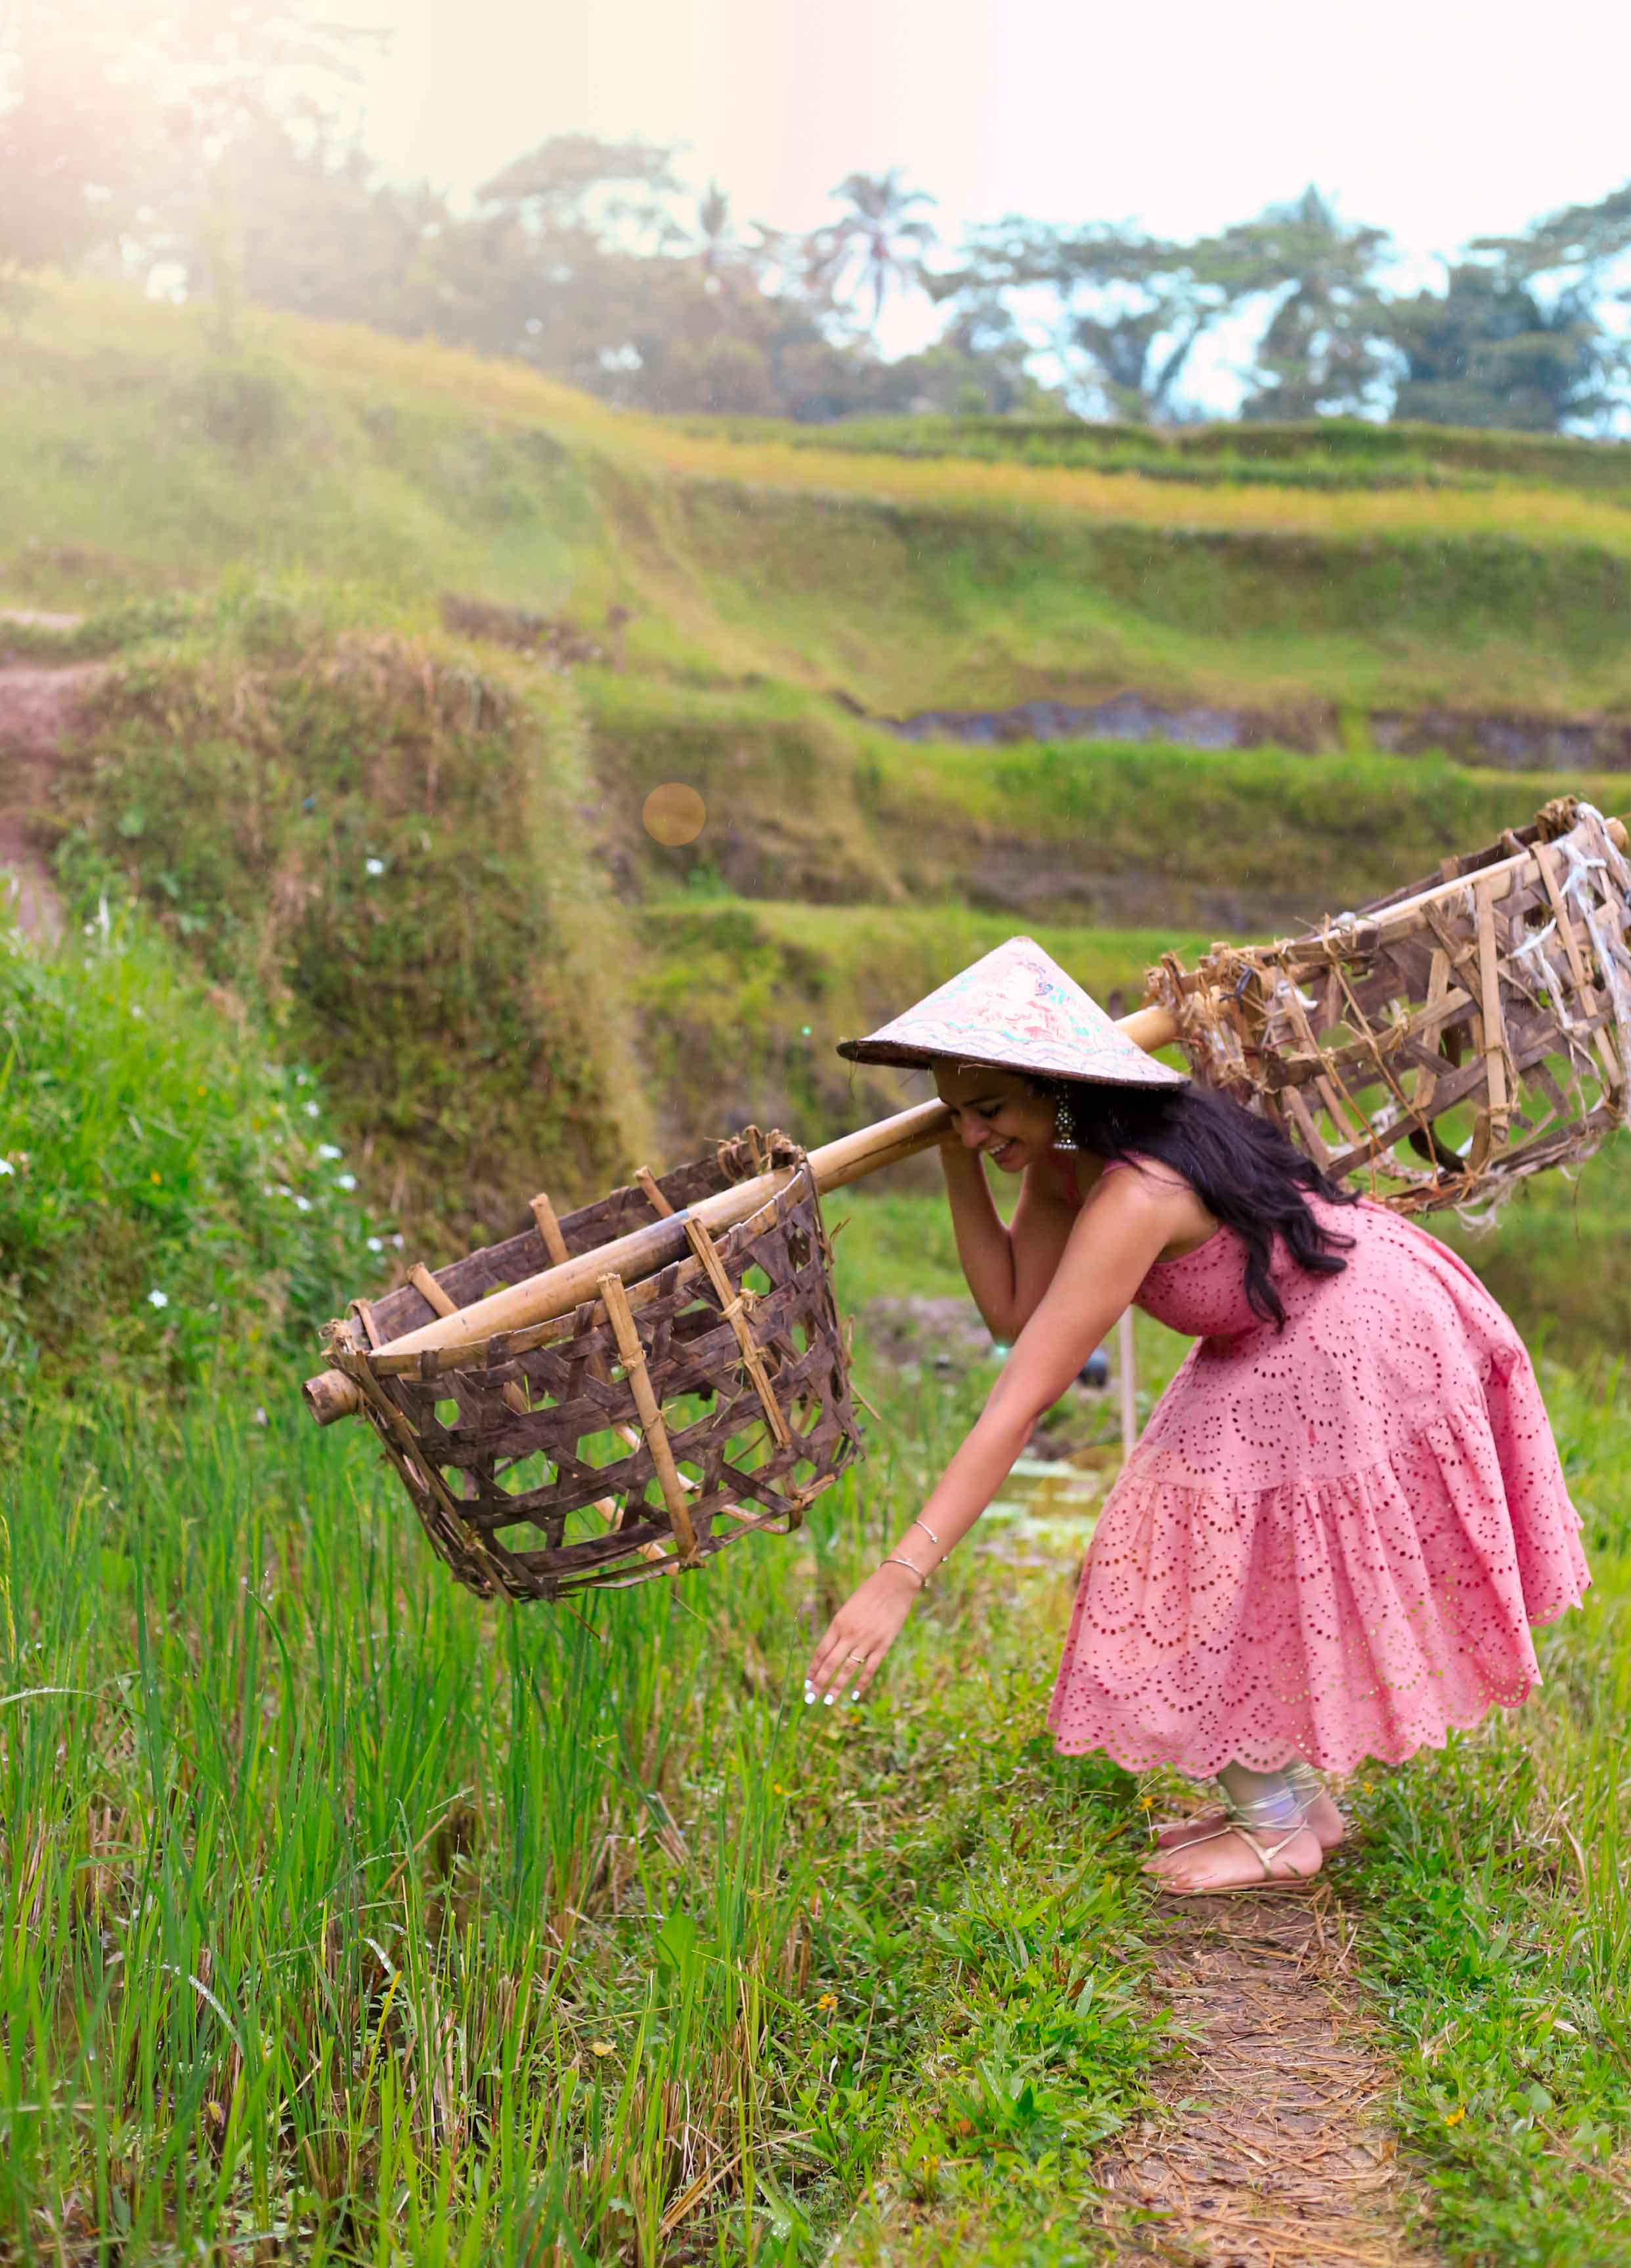 """One of the locals at the rice field let me """"harvest"""" some rice! Rice is like wheat, there are small grains at the top of the stalks that are gathered."""